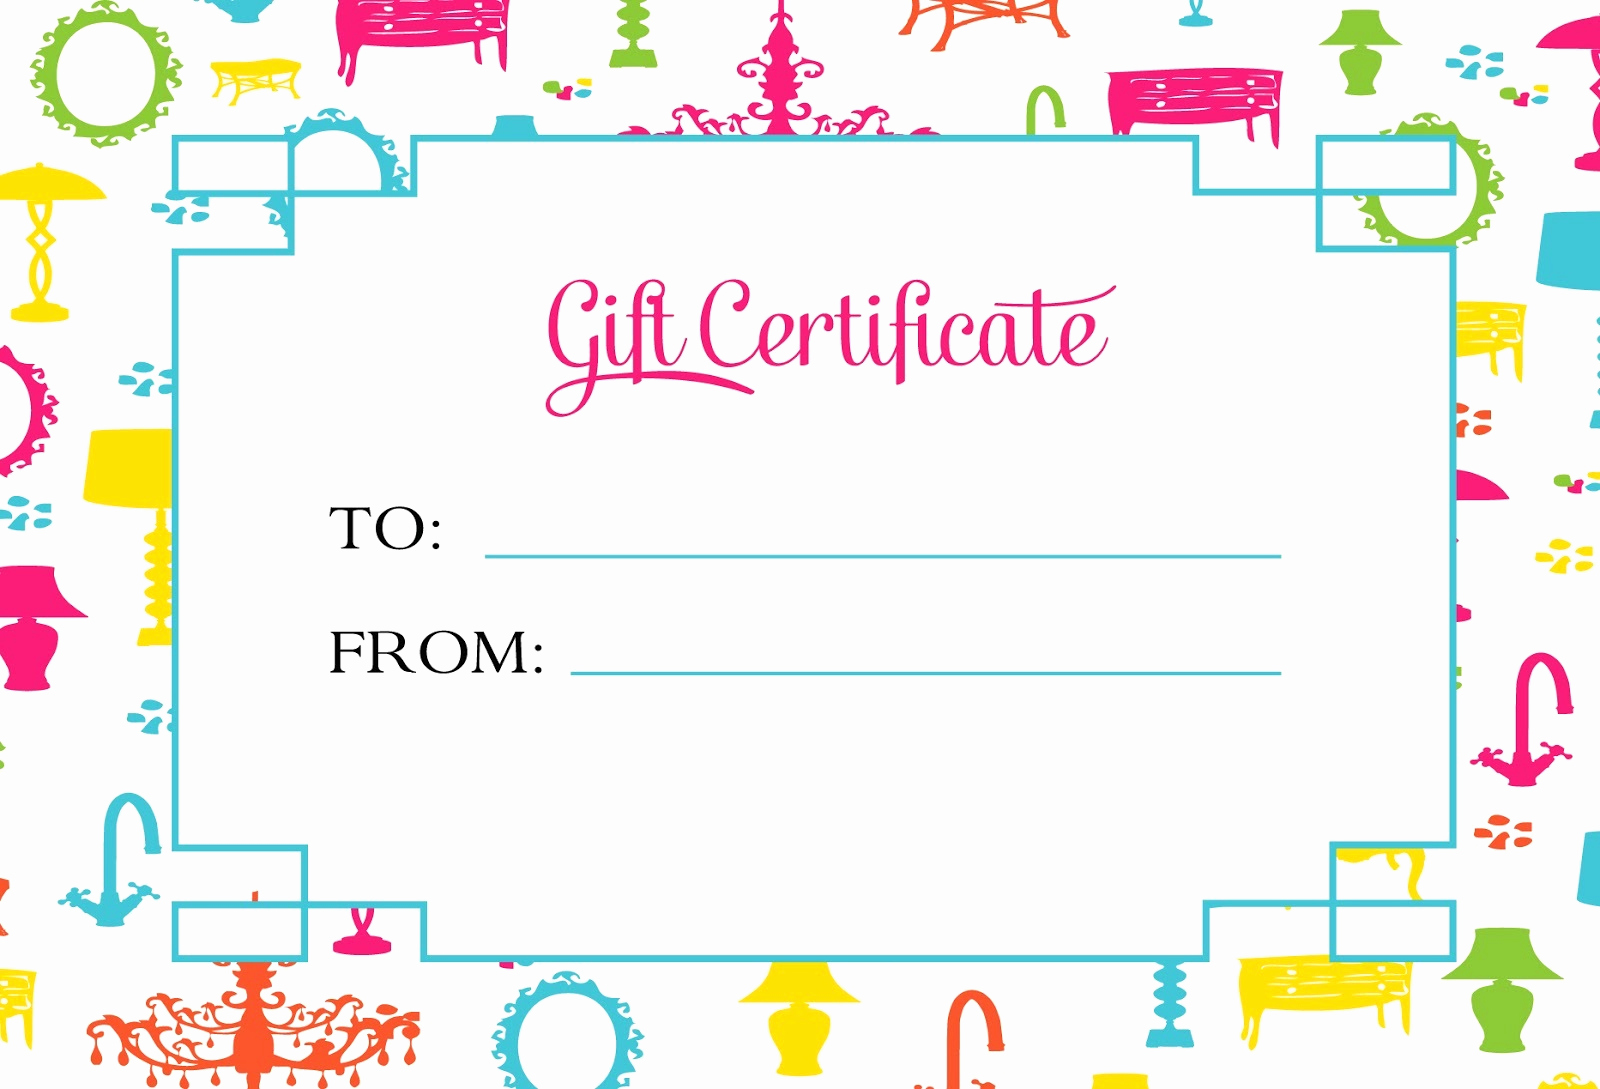 Fancy Gift Certificate Template Best Of Certificate Templates Editable Certificate Template for